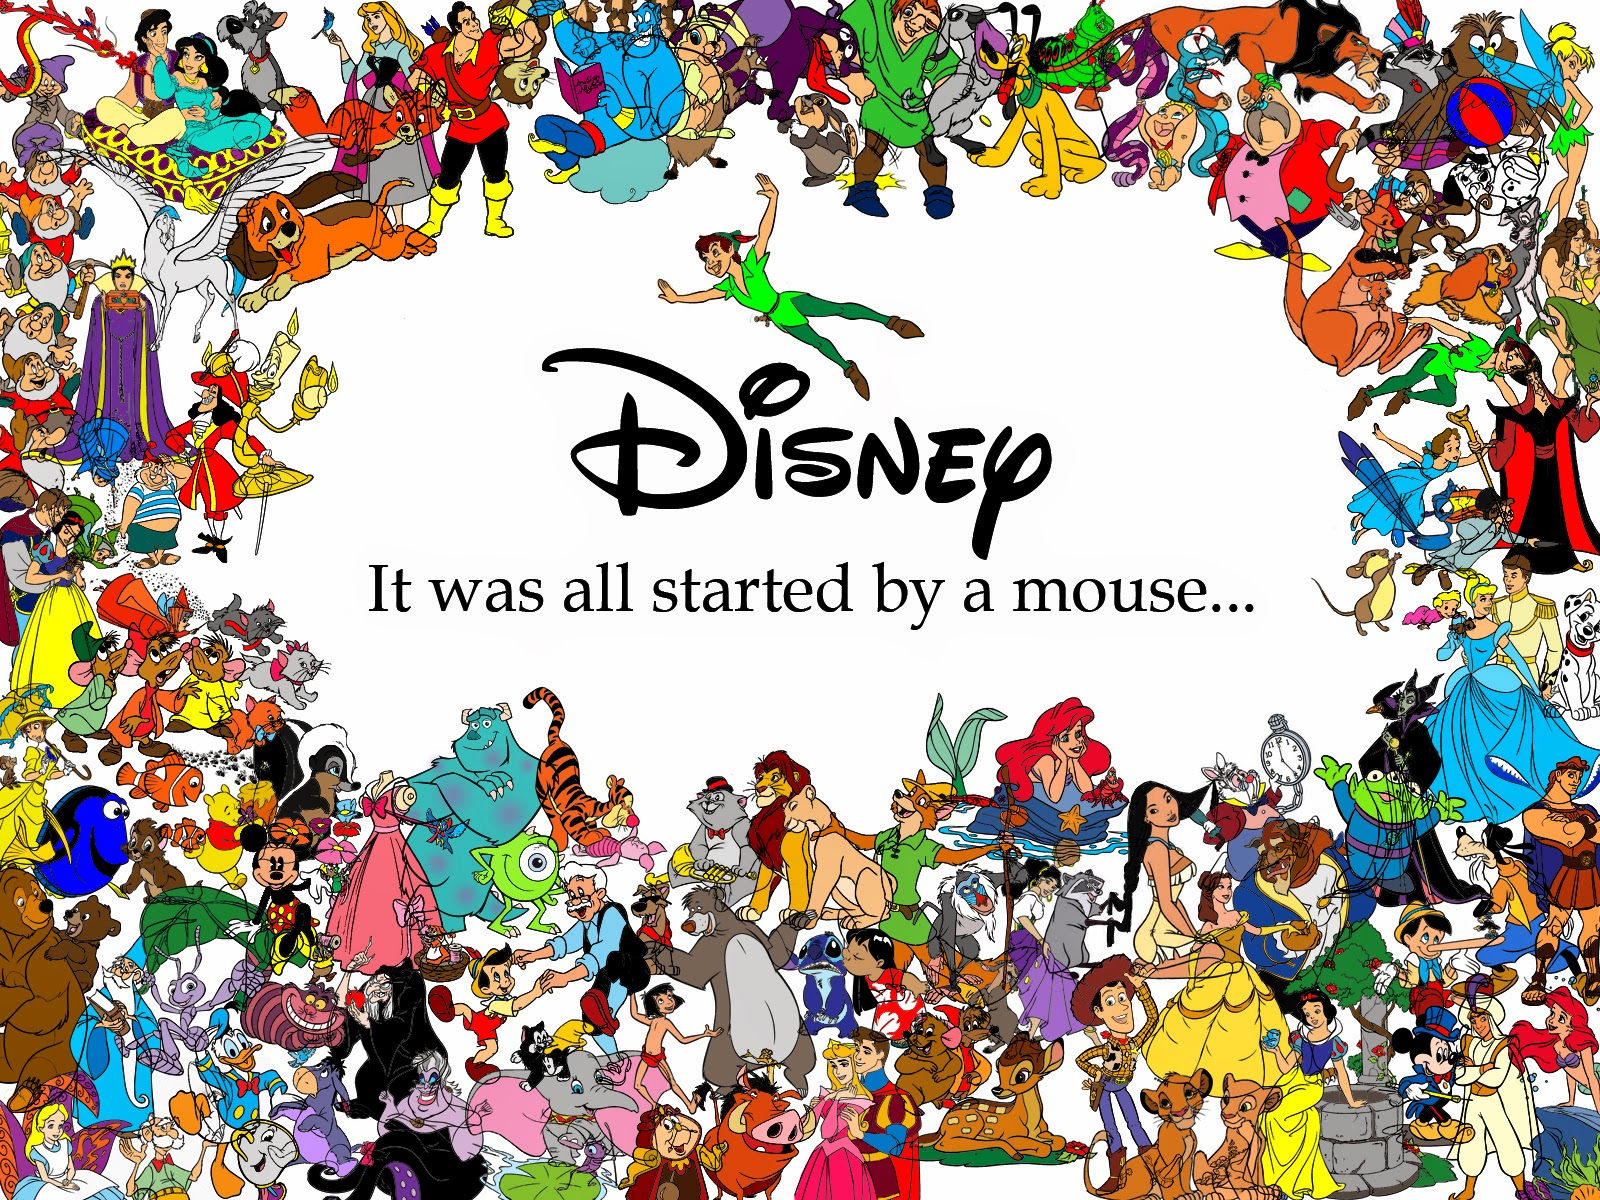 Disney pics Disney wallpapers Disney download wallpapers Disney 1600x1200